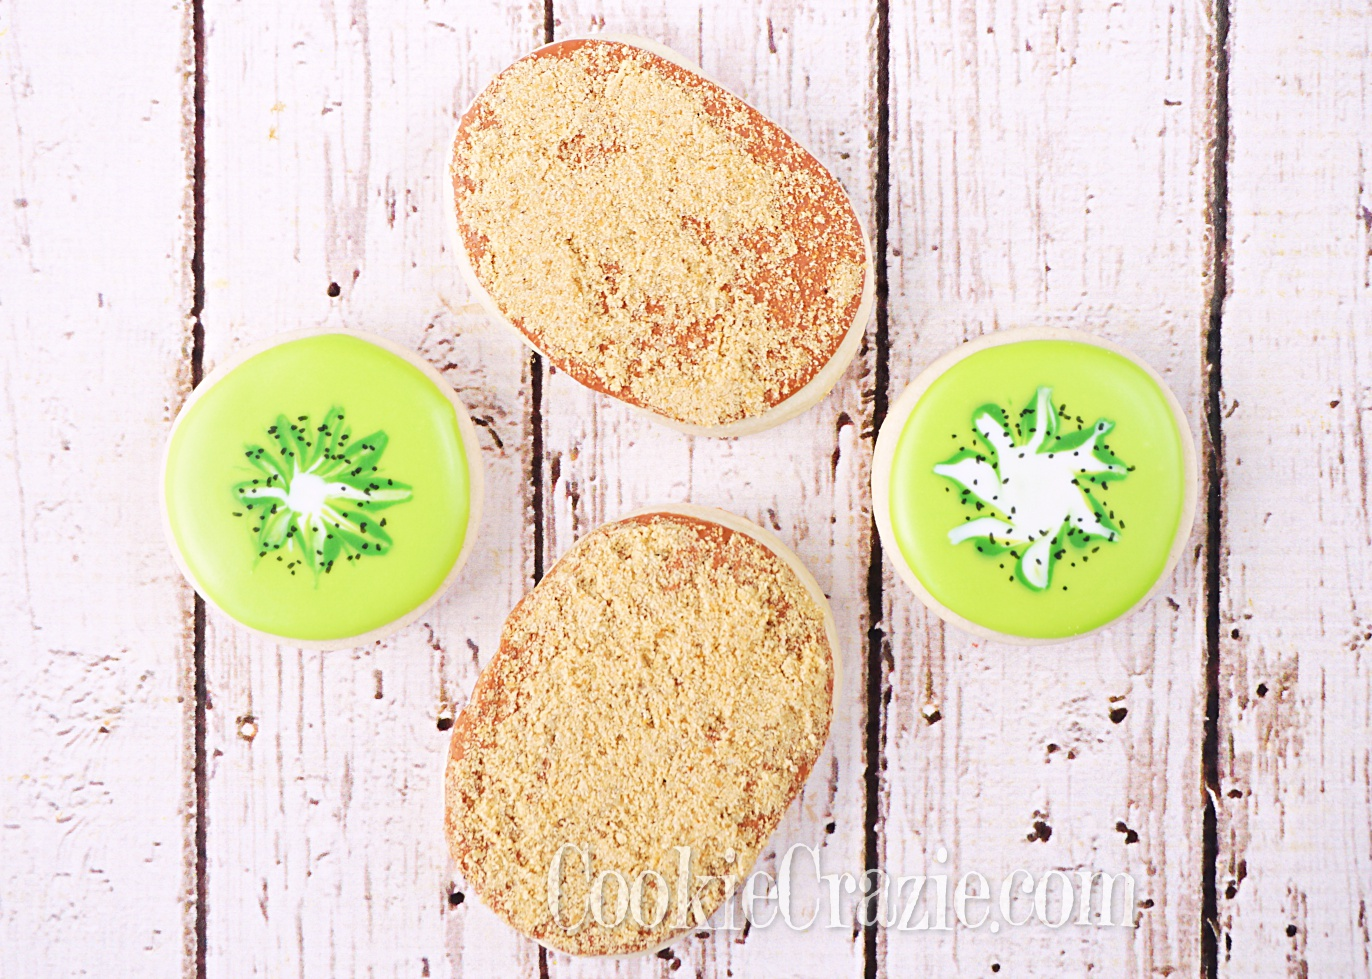 Kiwi Decorated Sugar Cookie YouTube video  HERE